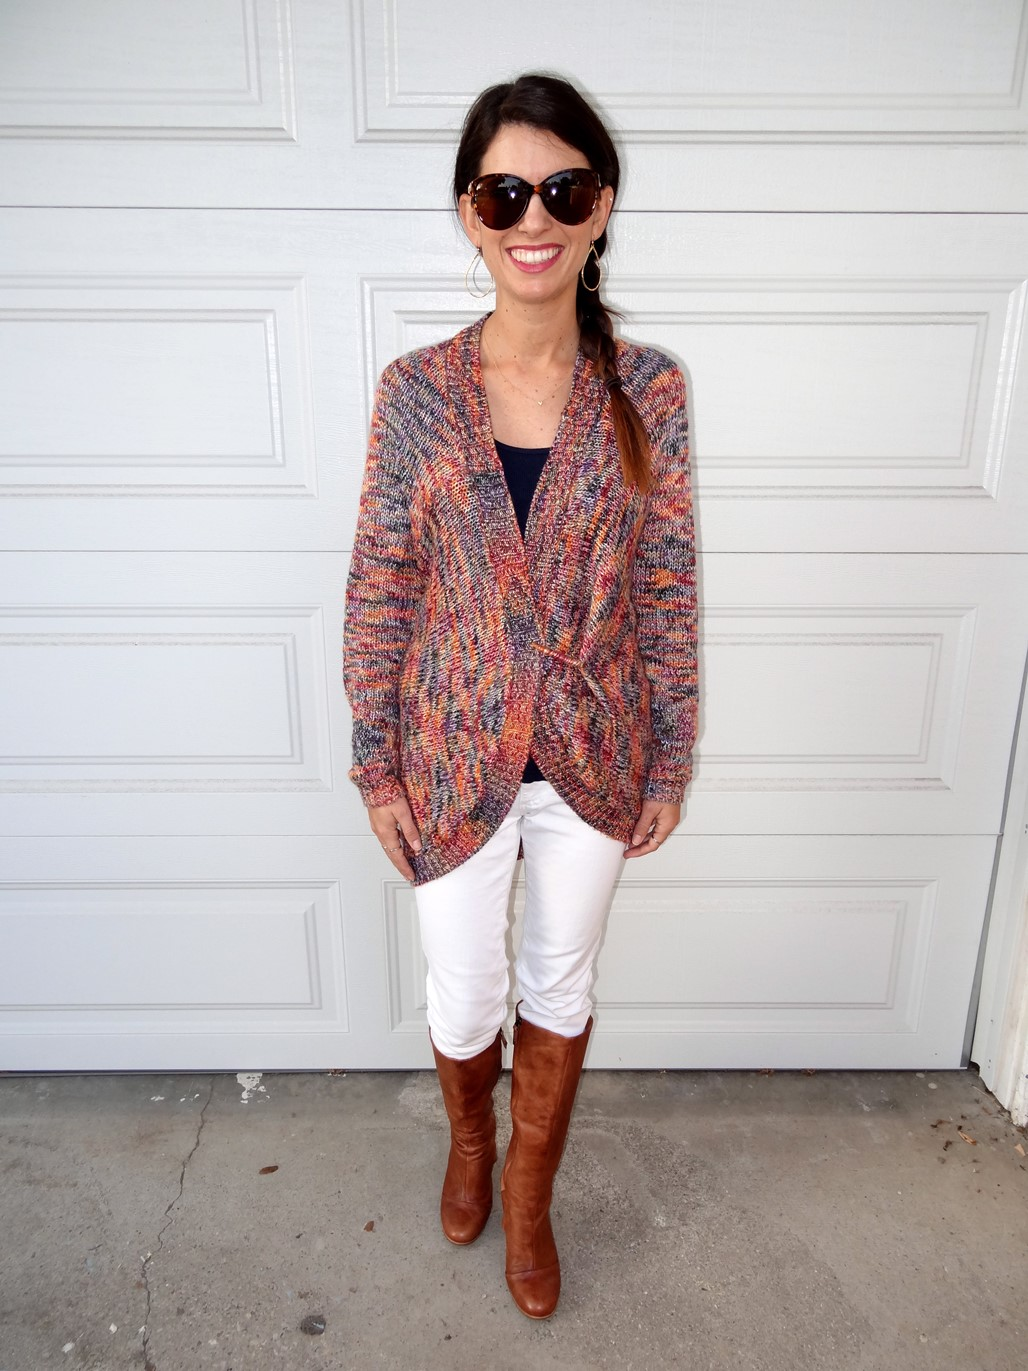 2. Wear of the Week White Pants and a Chunky Sweater